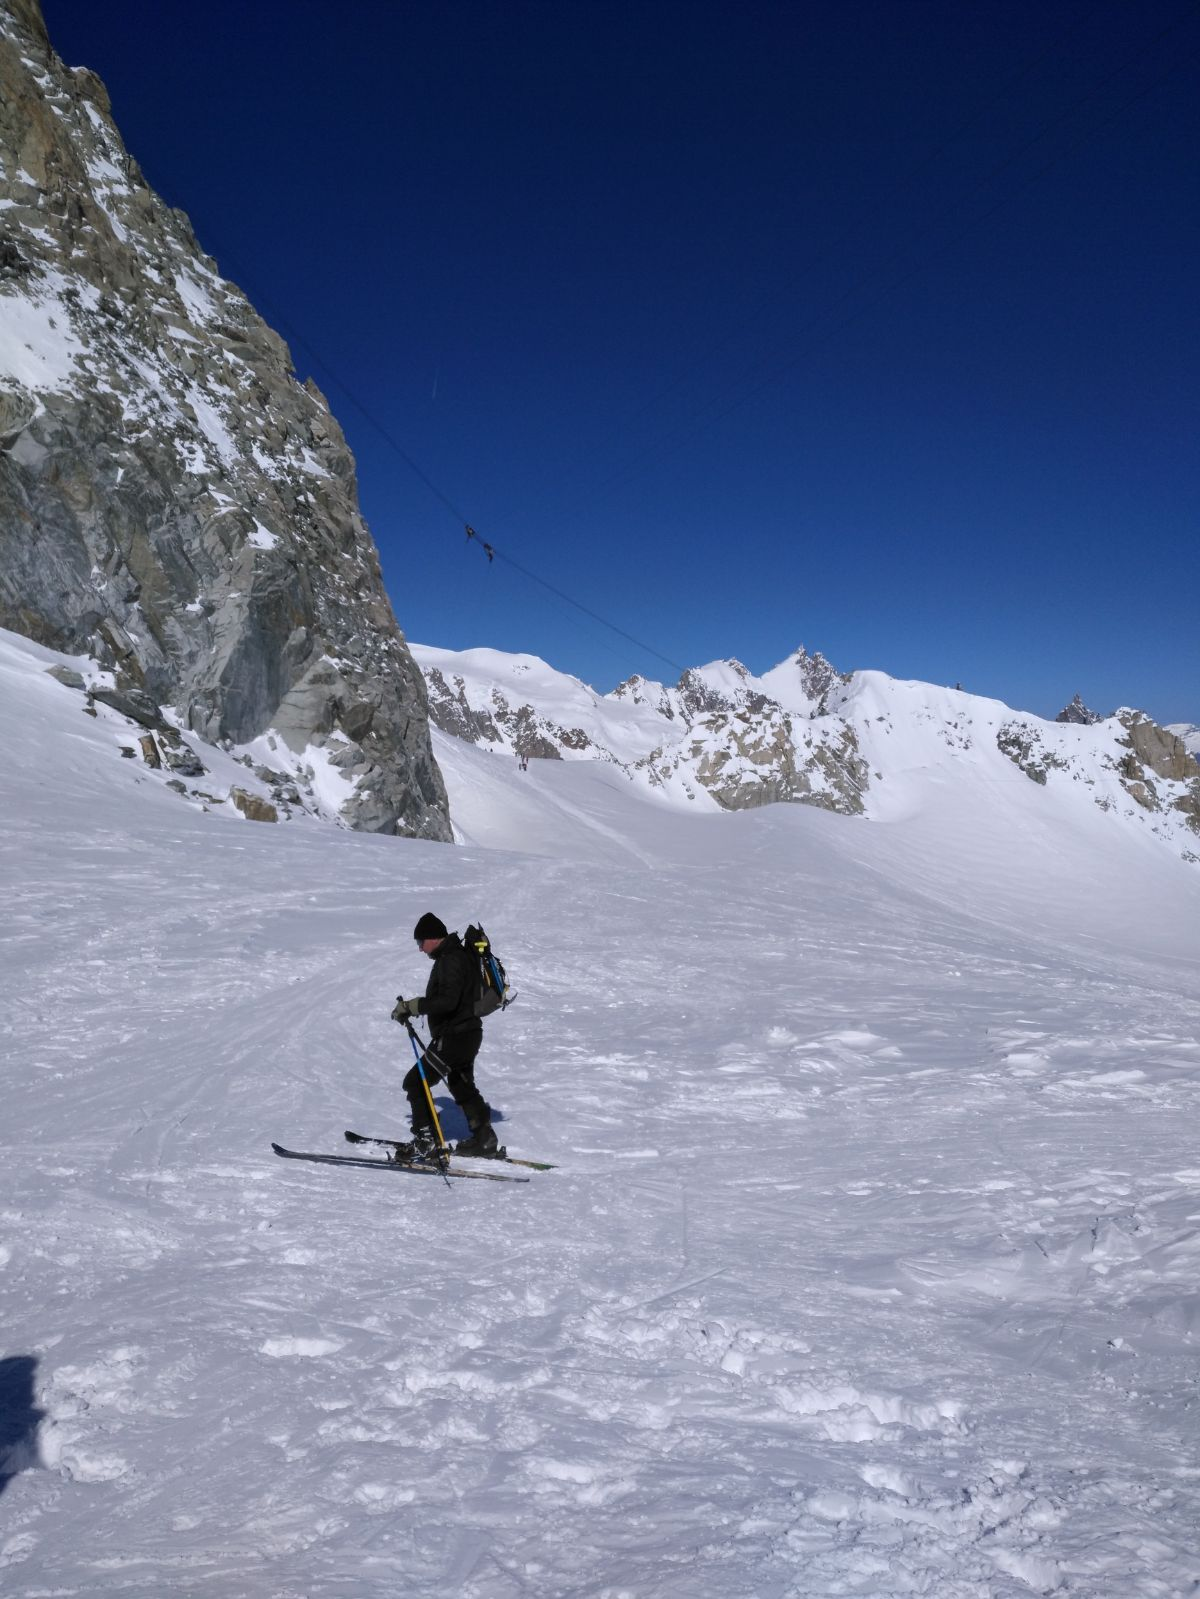 vallee blanche guide alpine proup (64)